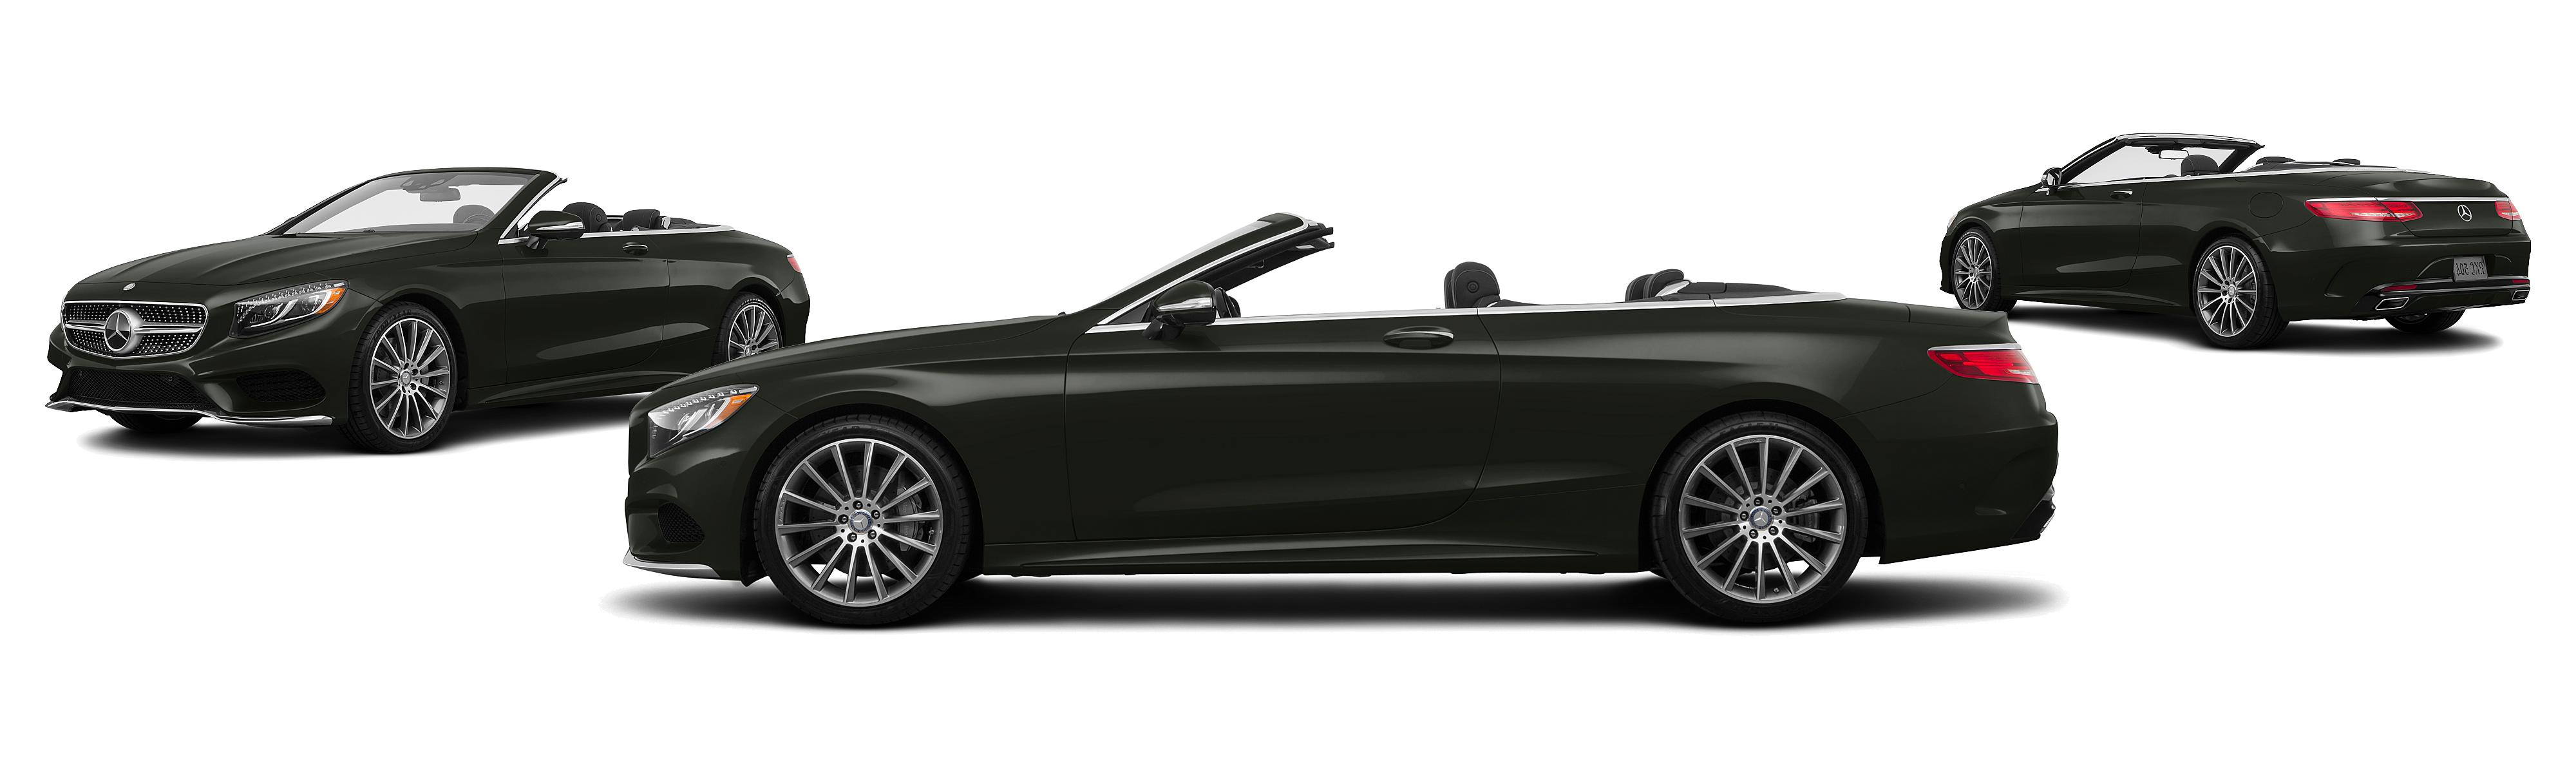 2017 Mercedes Benz S Class S 550 2dr Convertible Research GrooveCar